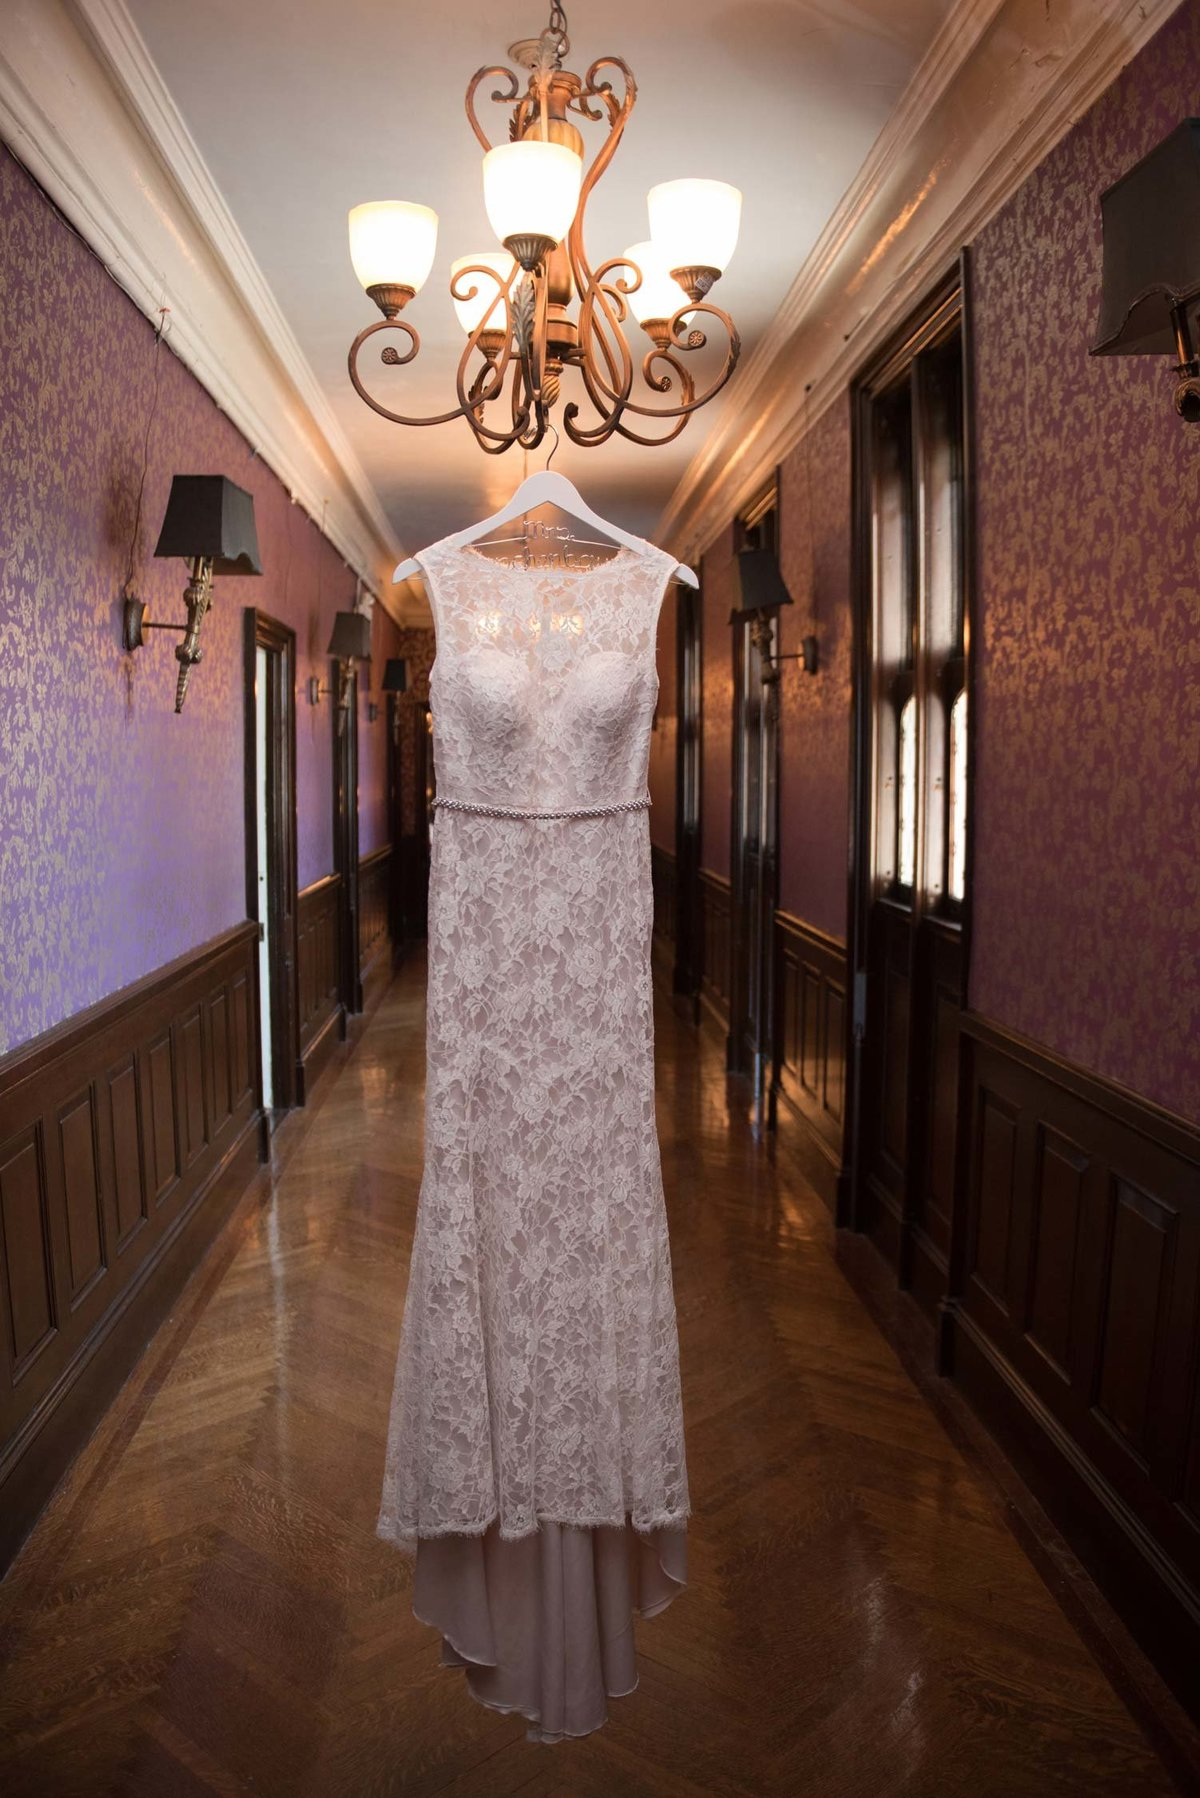 Bride's wedding dress hanging on a chandelier at Hempstead House